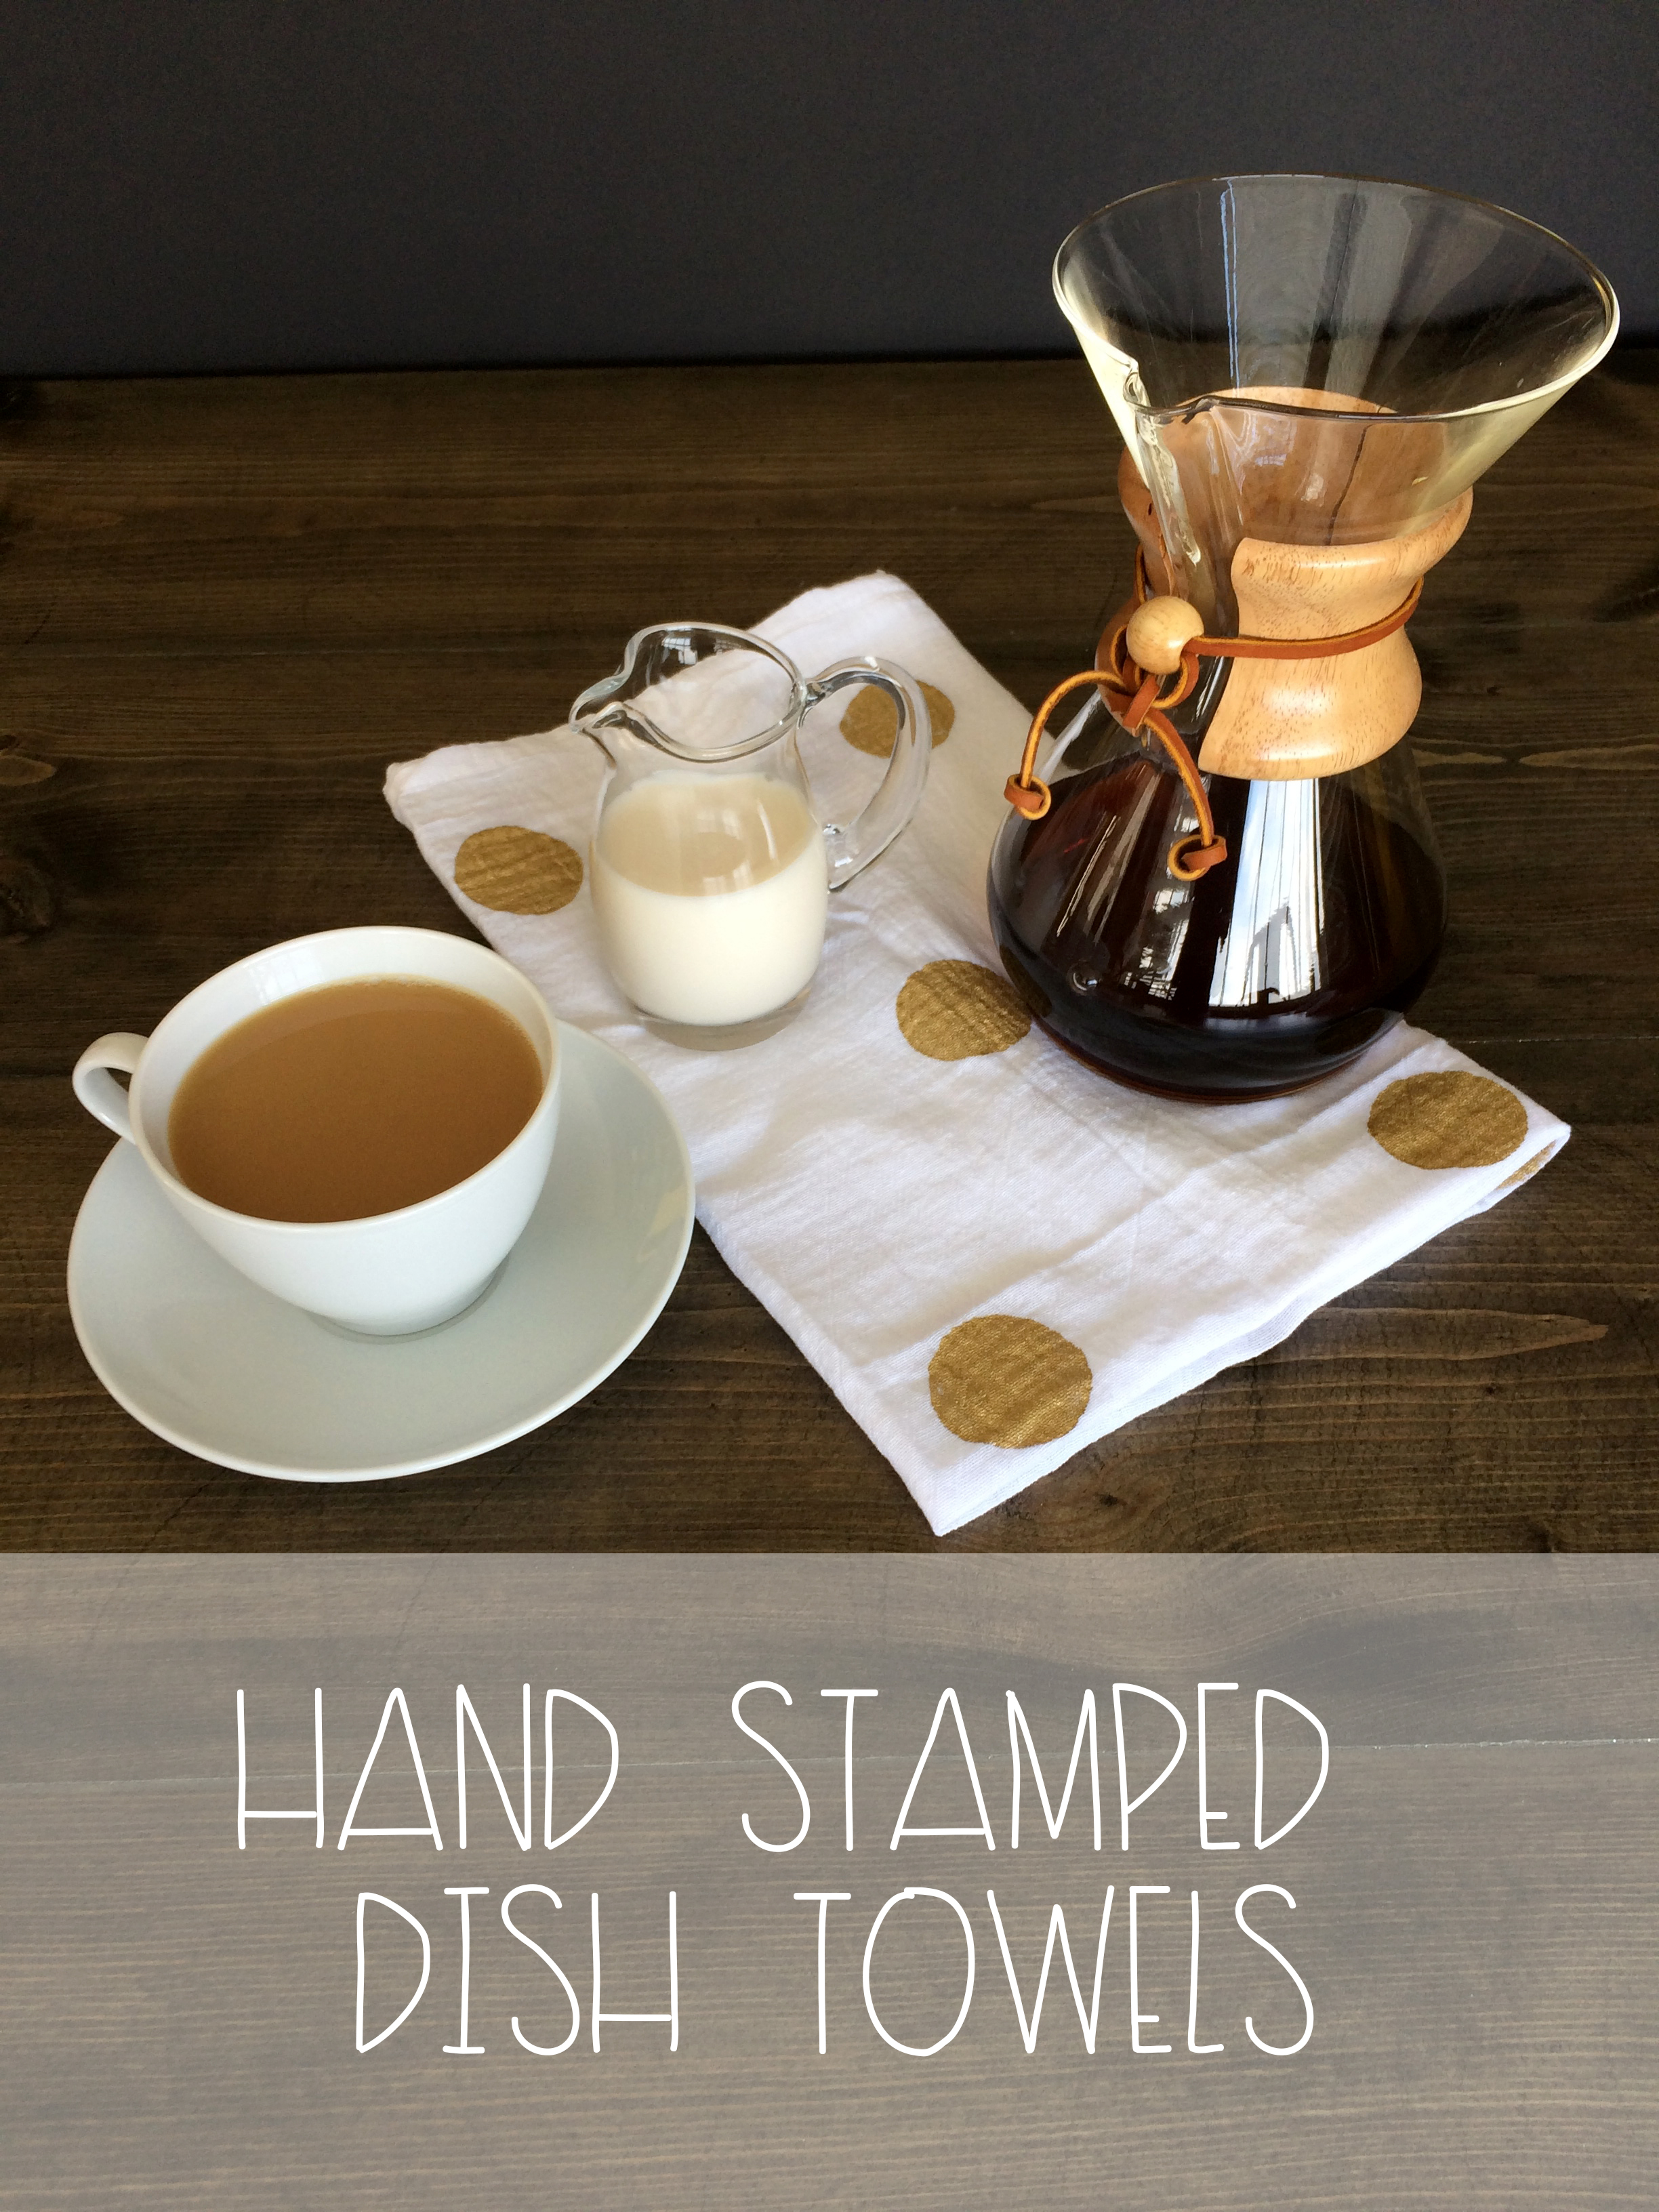 Hand Stamped Dish Towels | Red Autumn Co